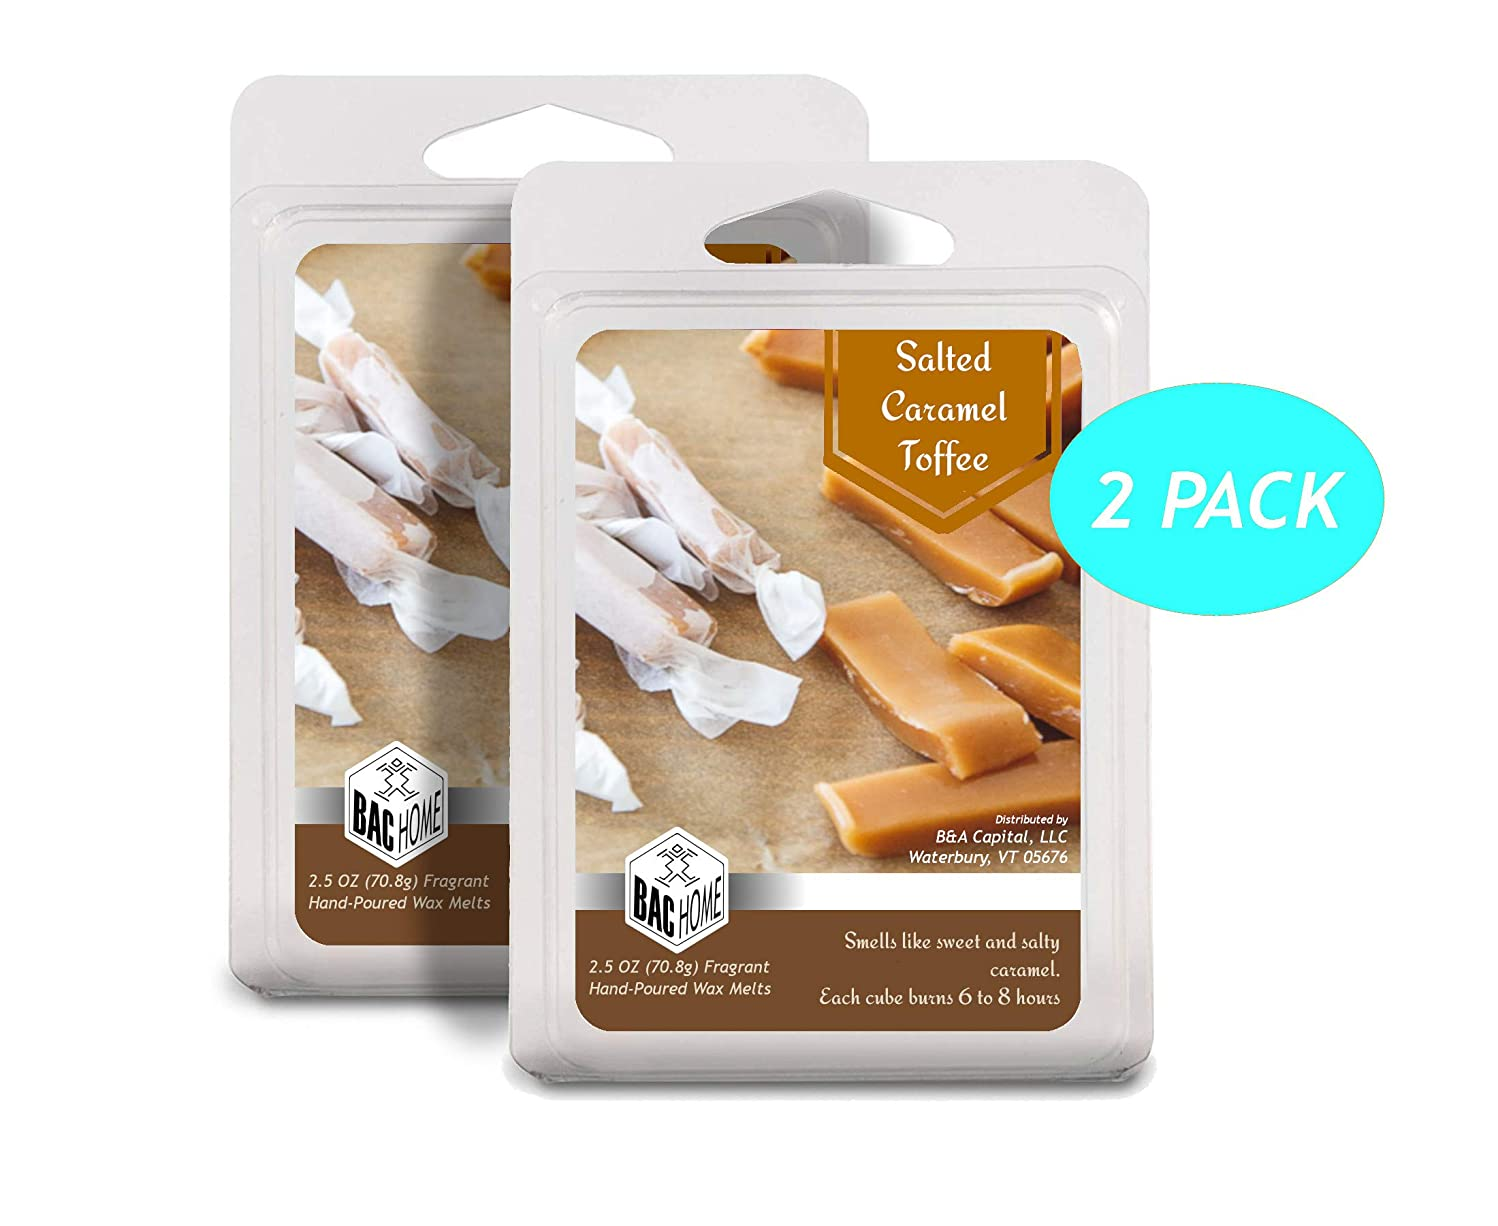 BAC Home Salted Caramel Toffee Soy Blend Scented Wax Melts Wax Cubes, 2.5 oz, [6 Cubes] (2)